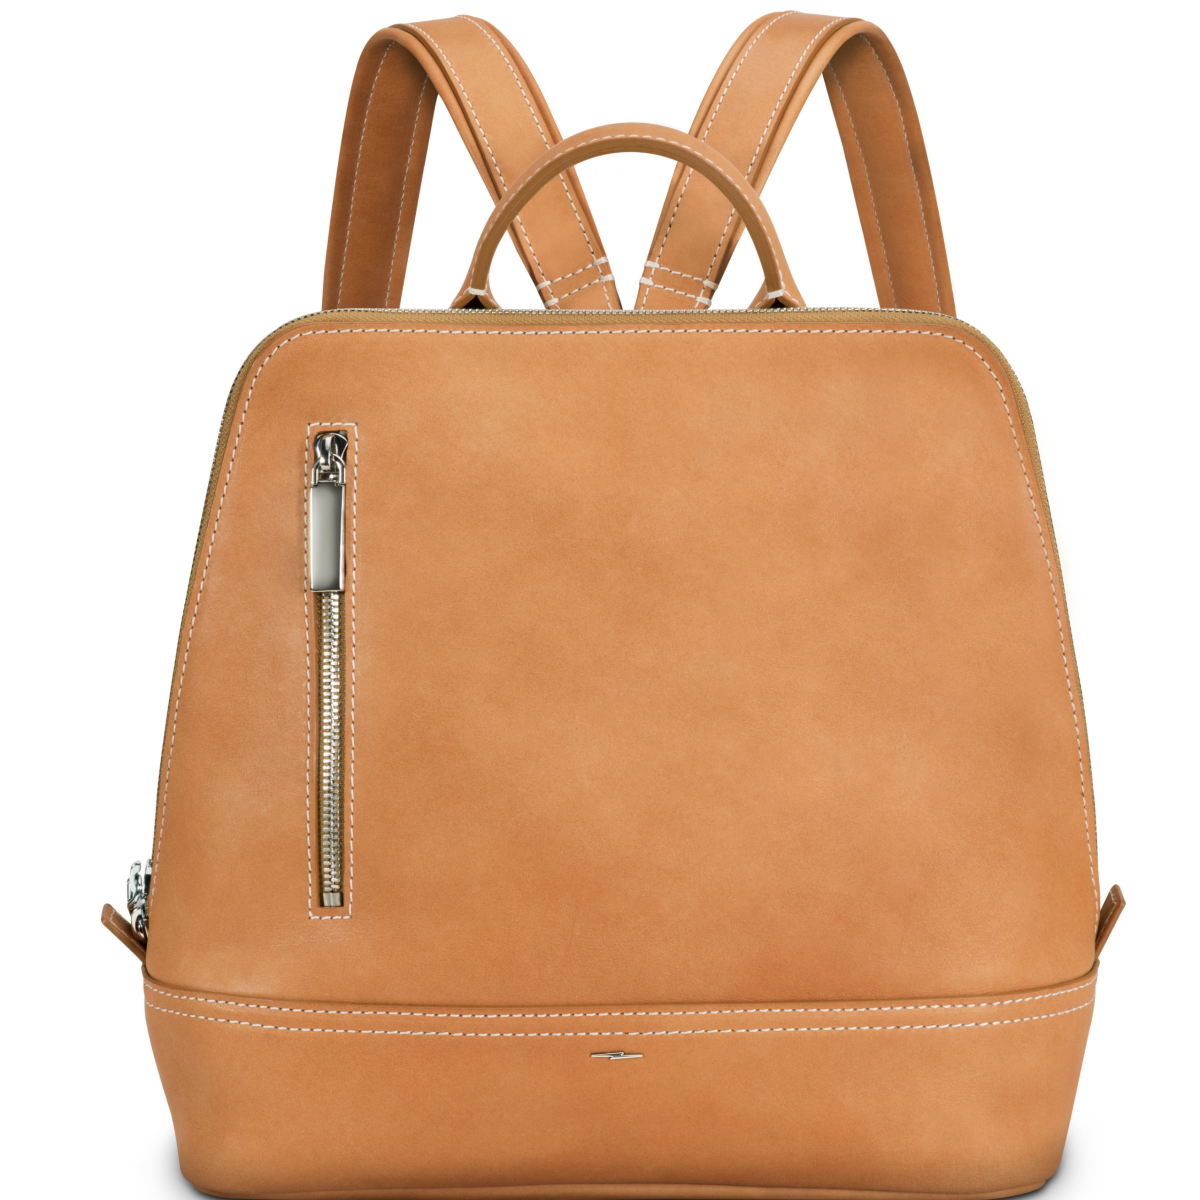 Shinola women's backpack